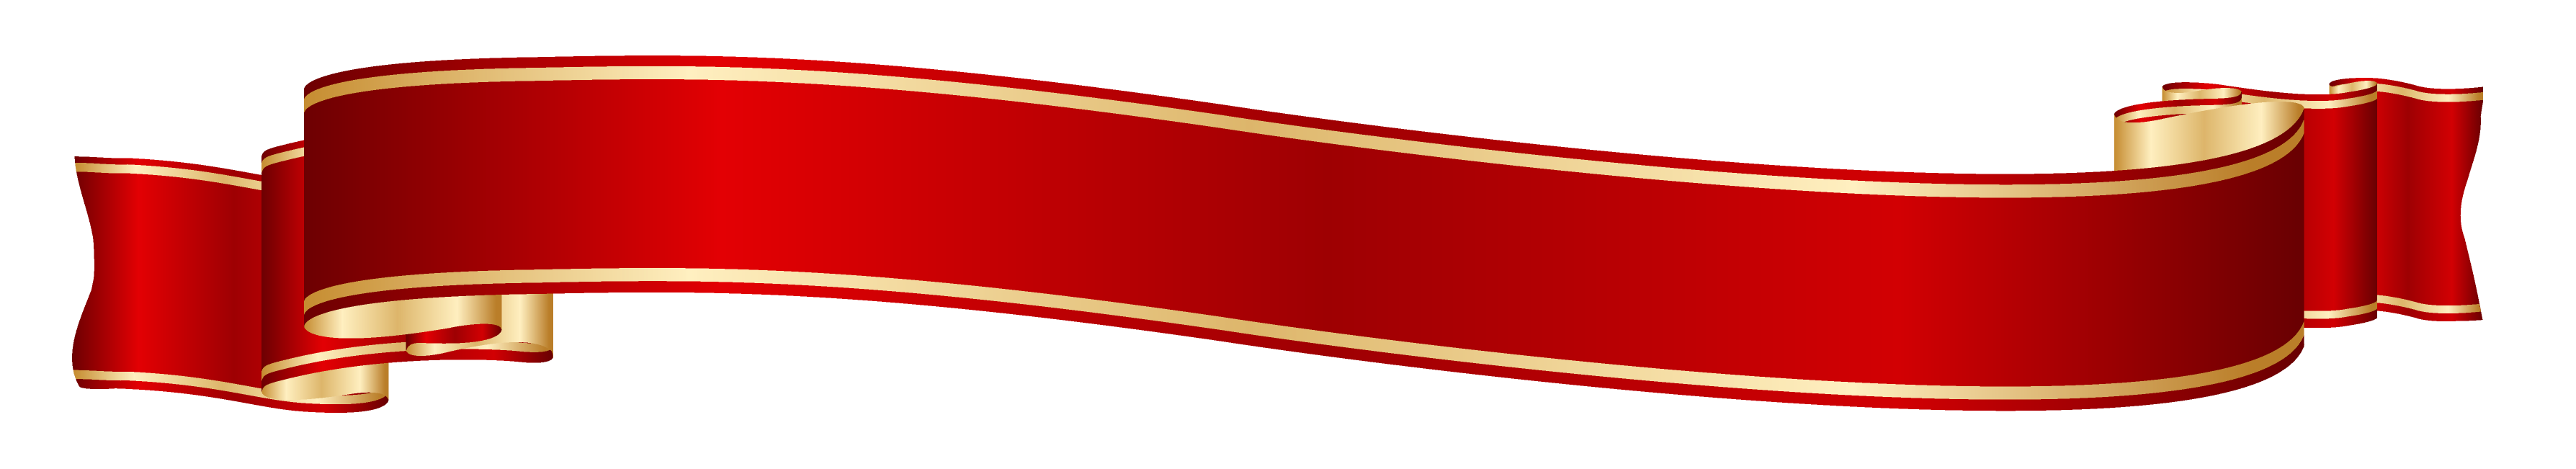 Red_and_Gold_Banner_PNG_Clipart_Picture